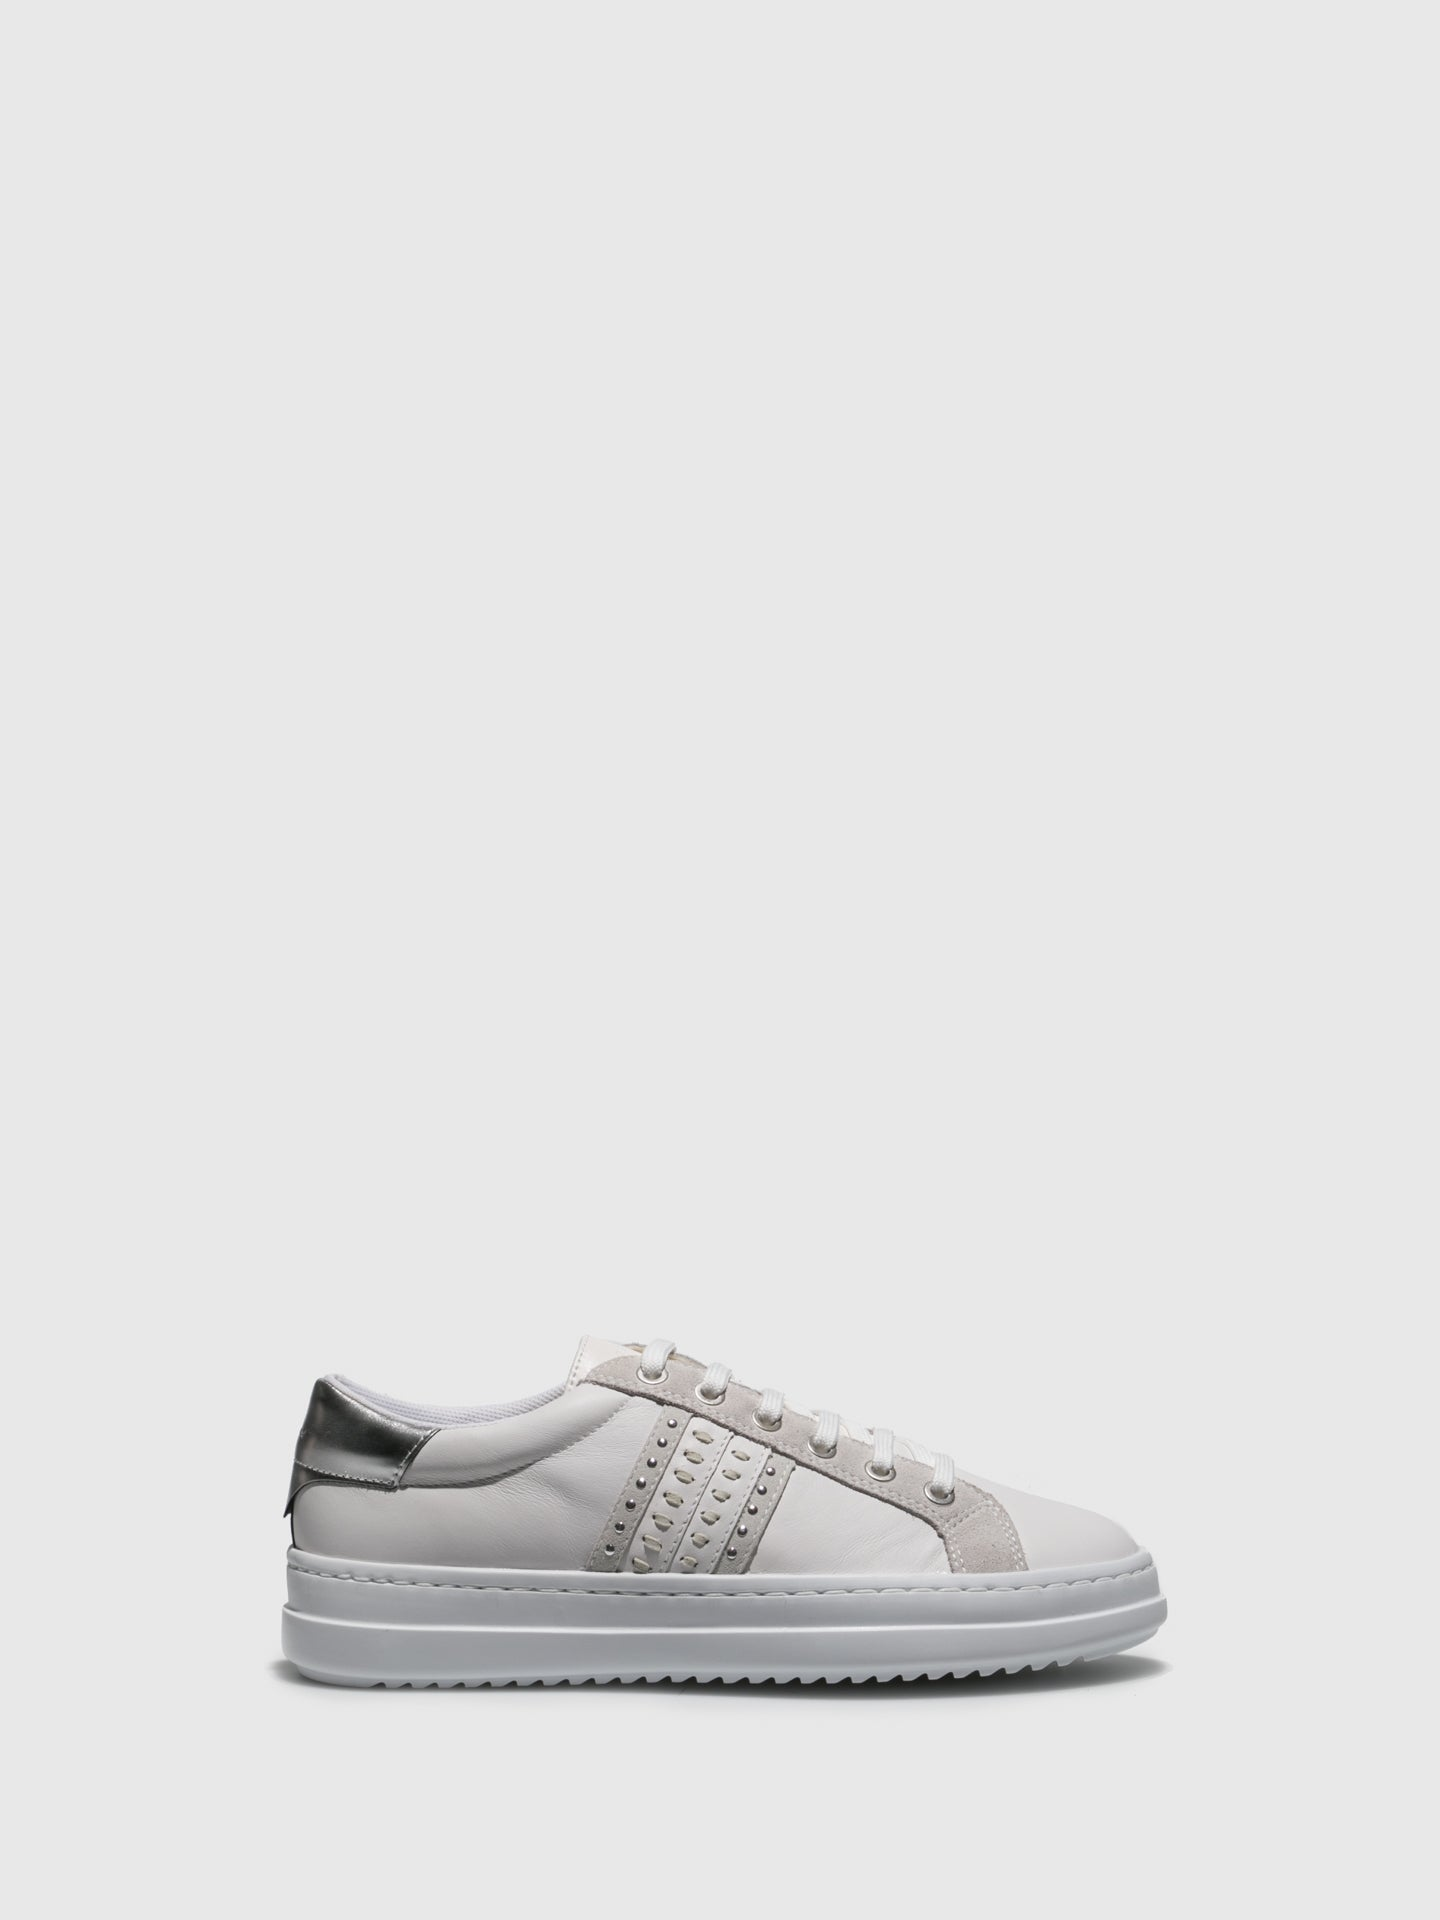 Geox Gray White Lace-up Trainers